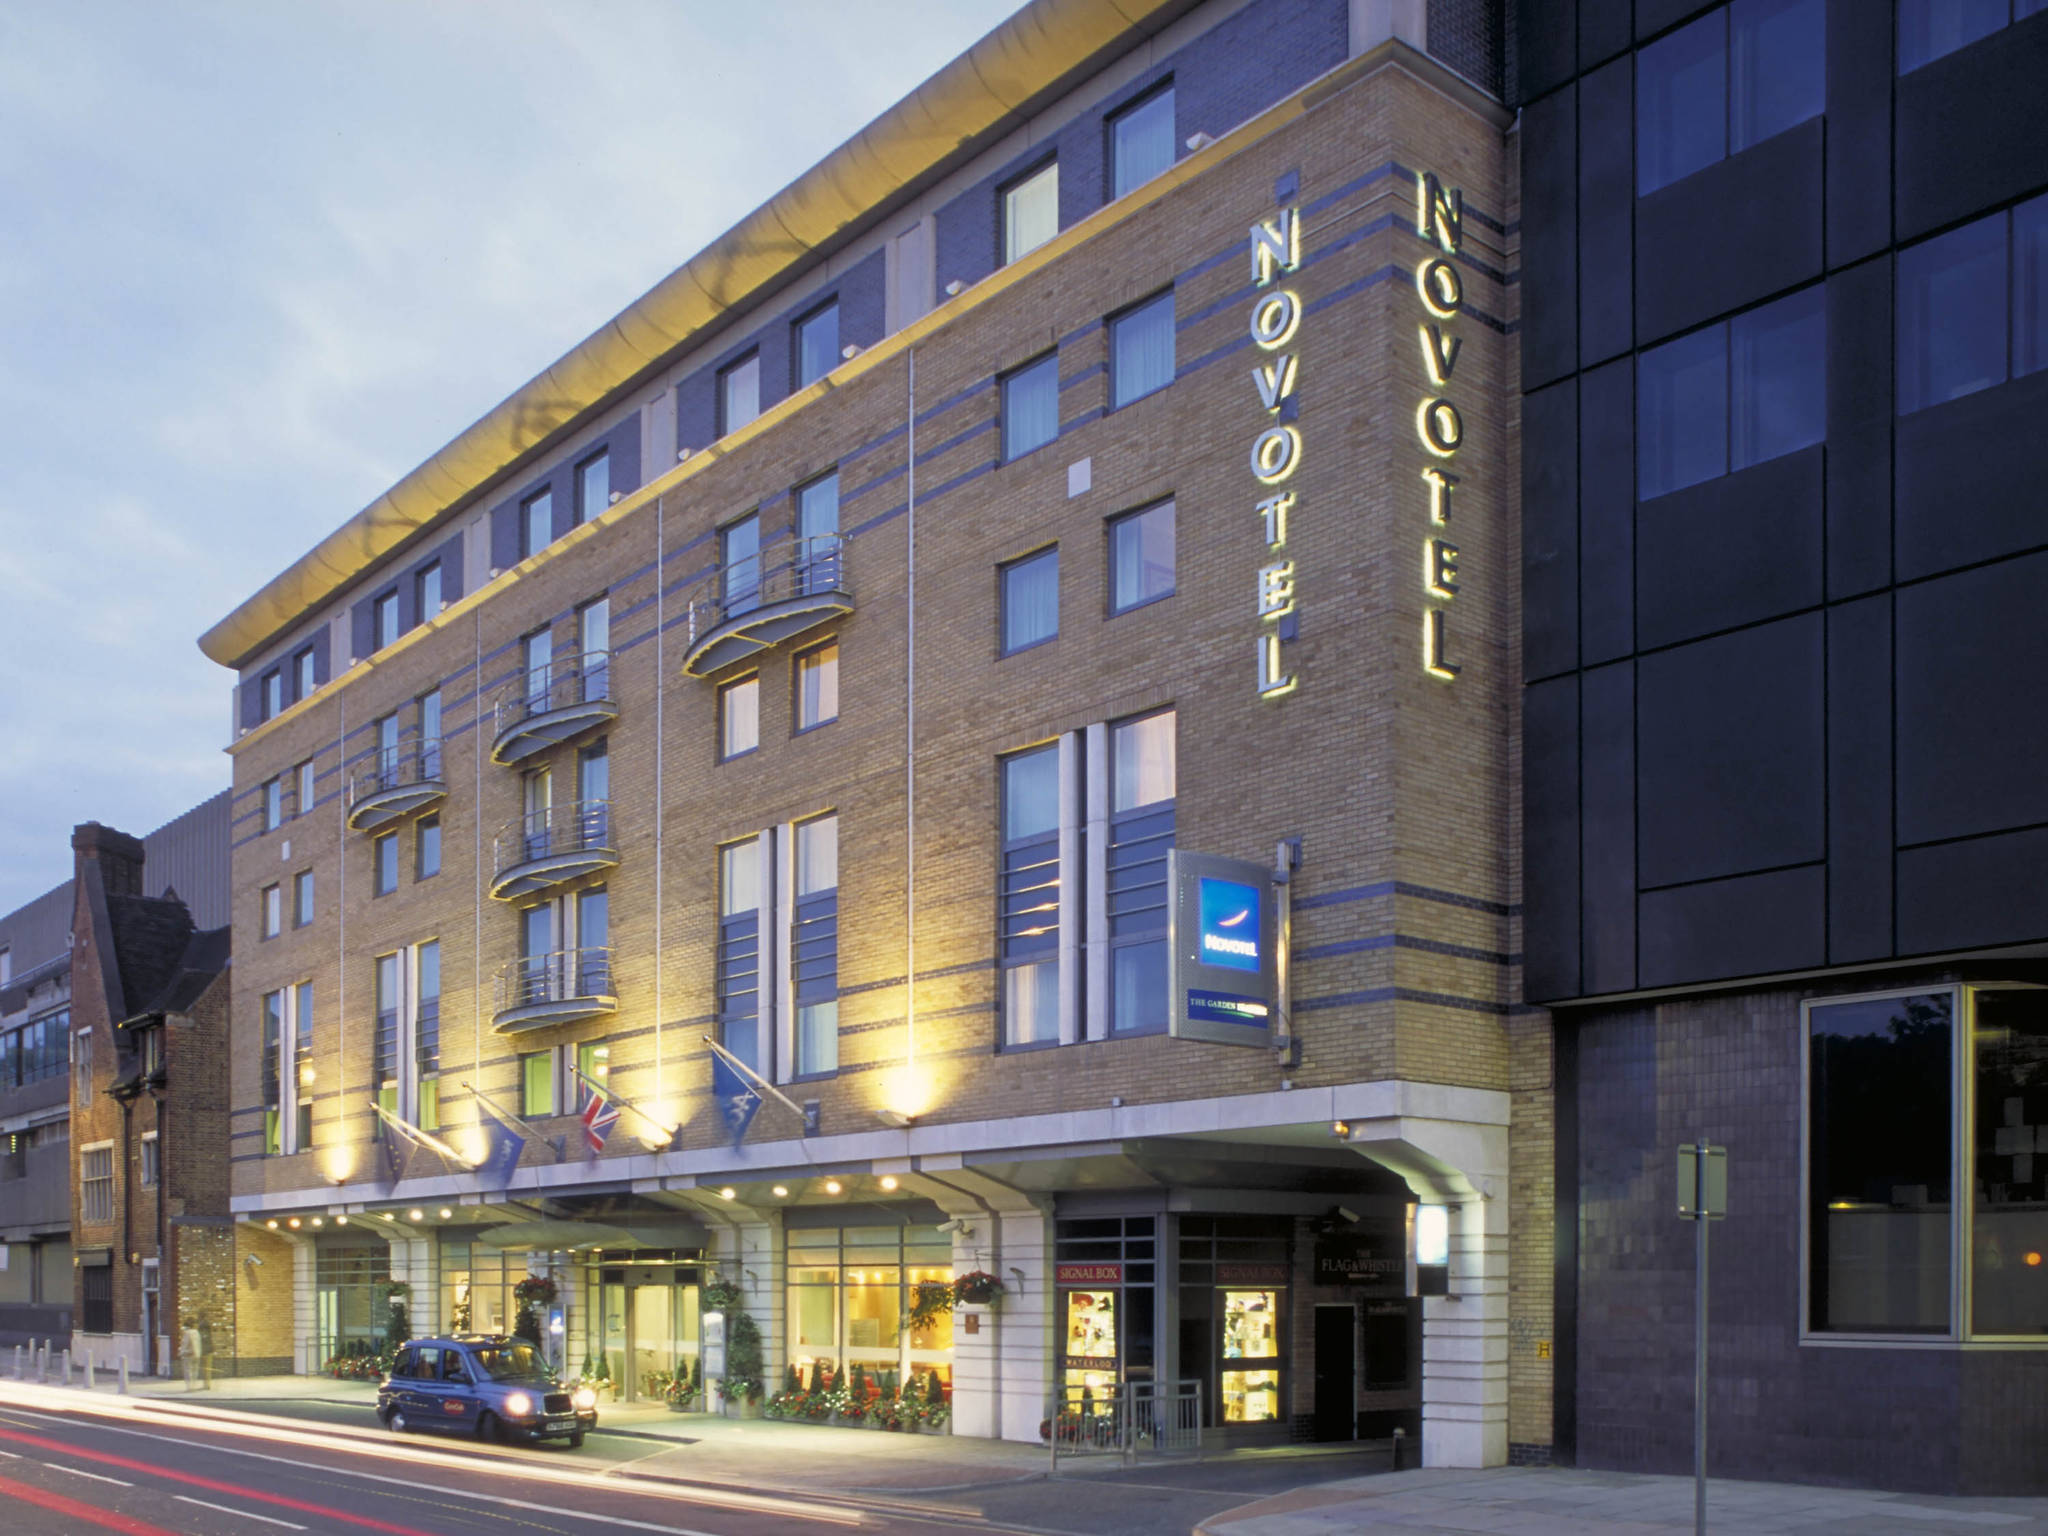 Hotell – Novotel London Waterloo